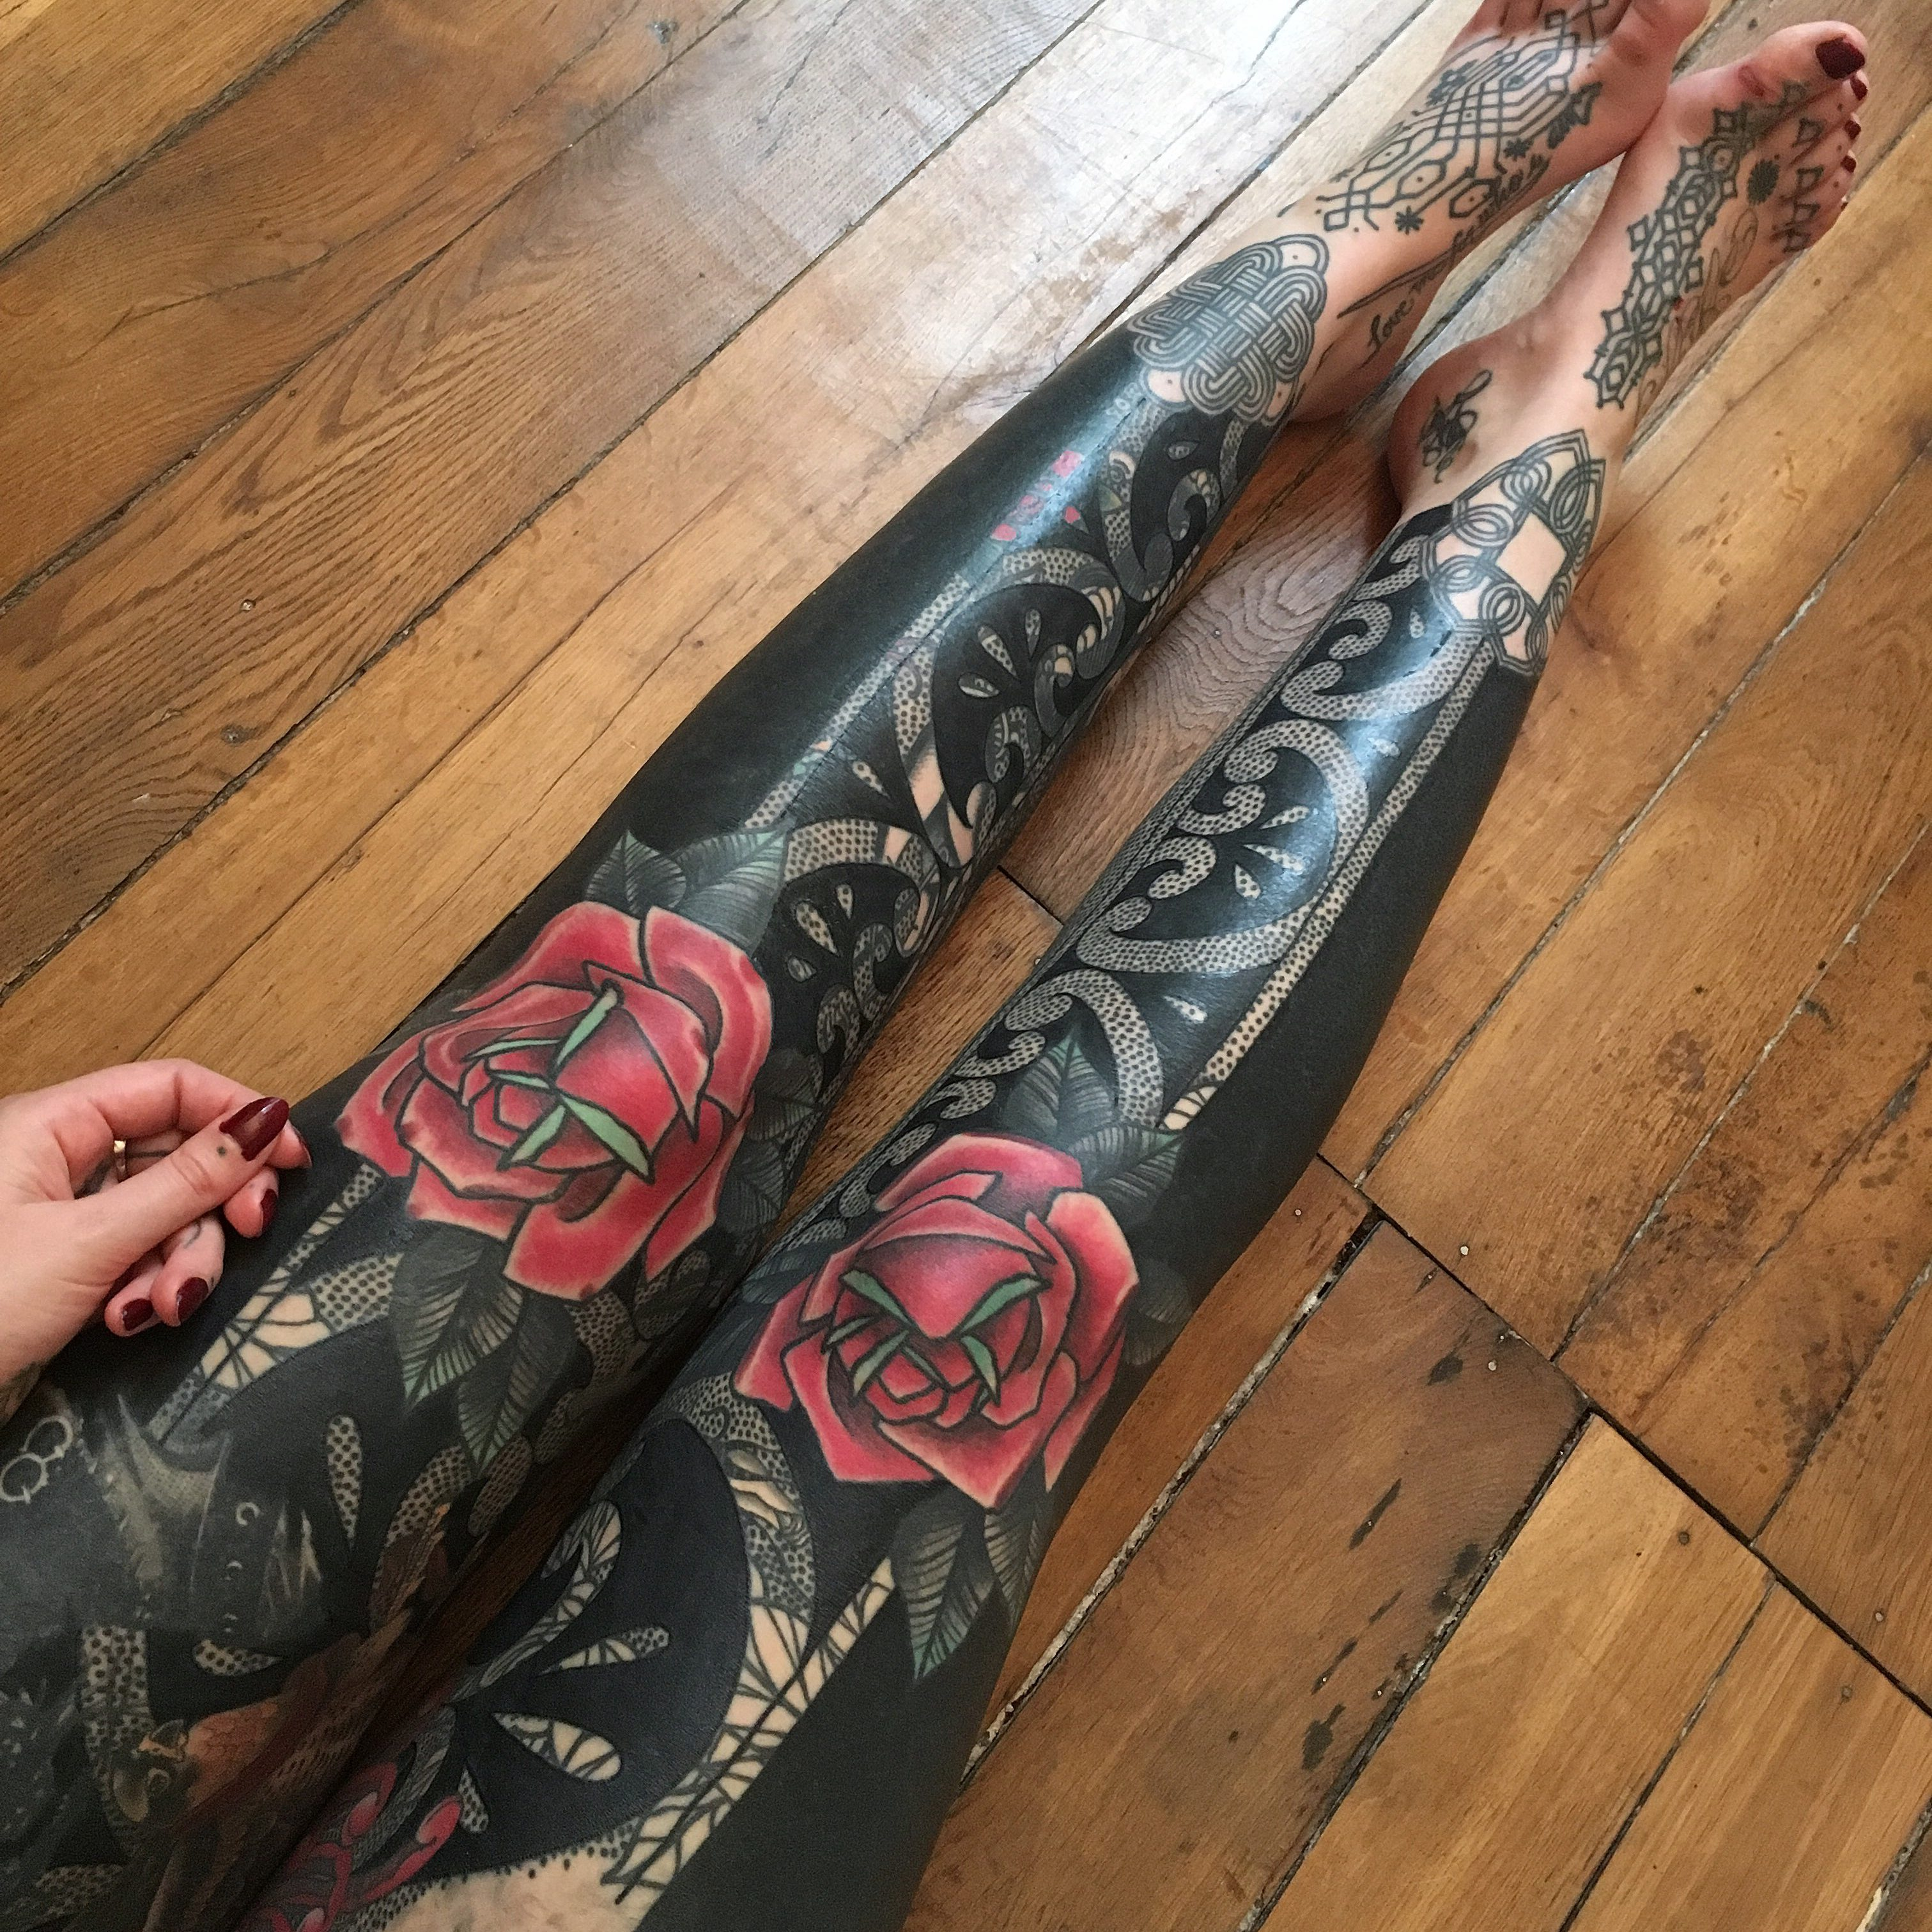 31a6493f7f Project started by Guy Le Tattooer in 2014